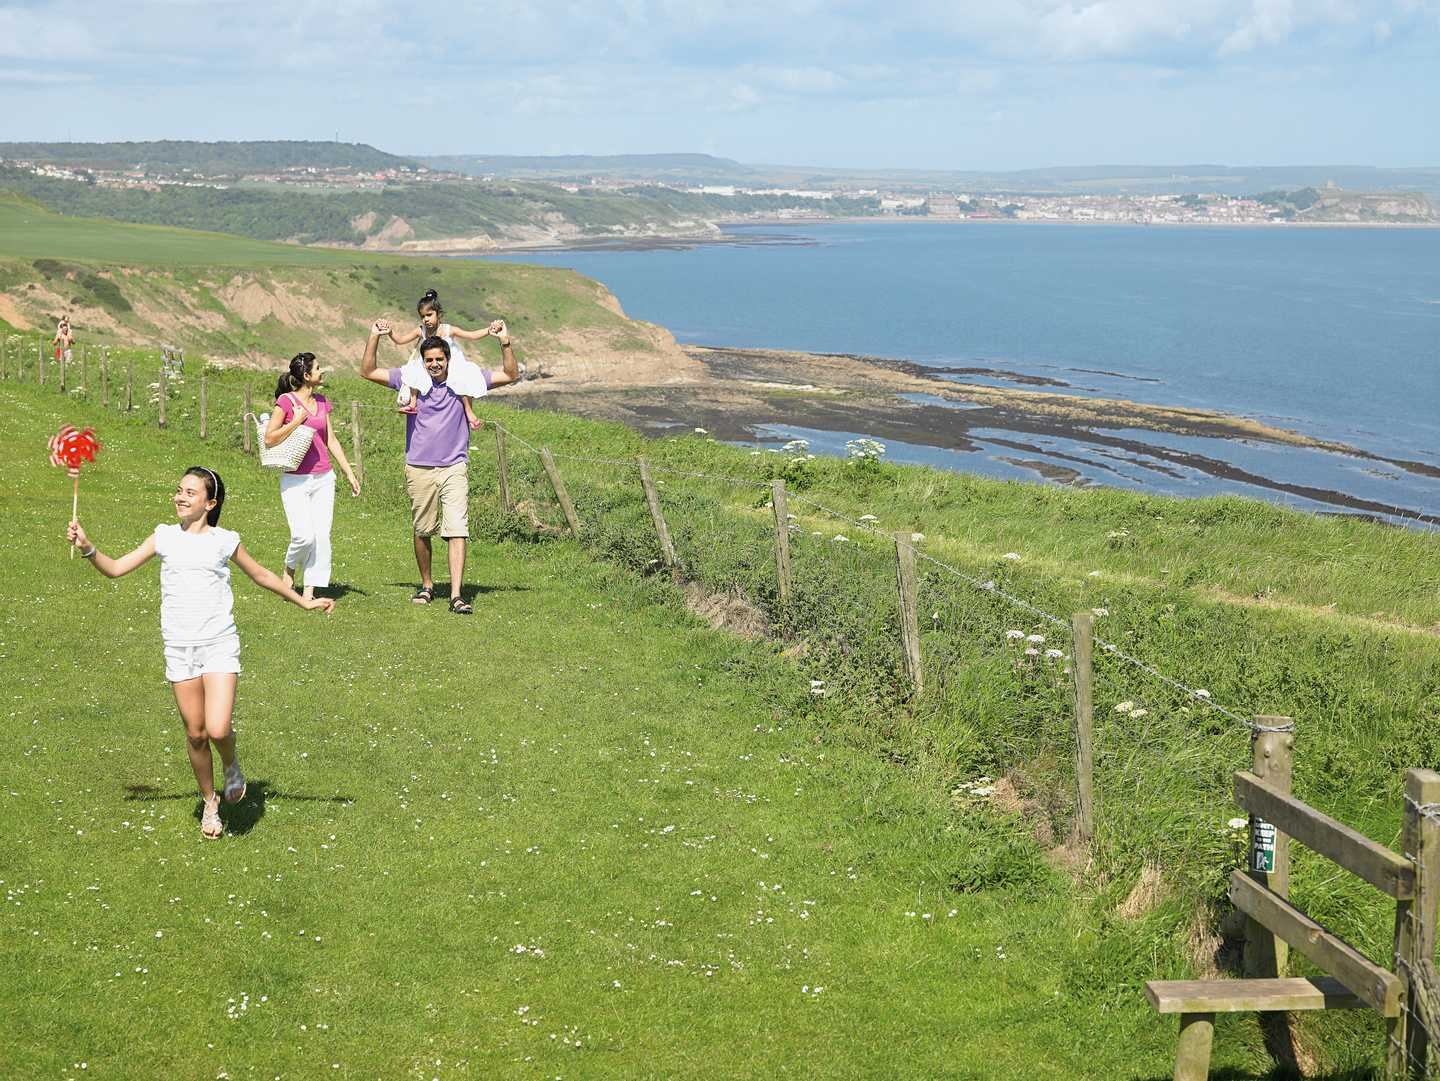 Family walking along the clifftops overlooking the sea